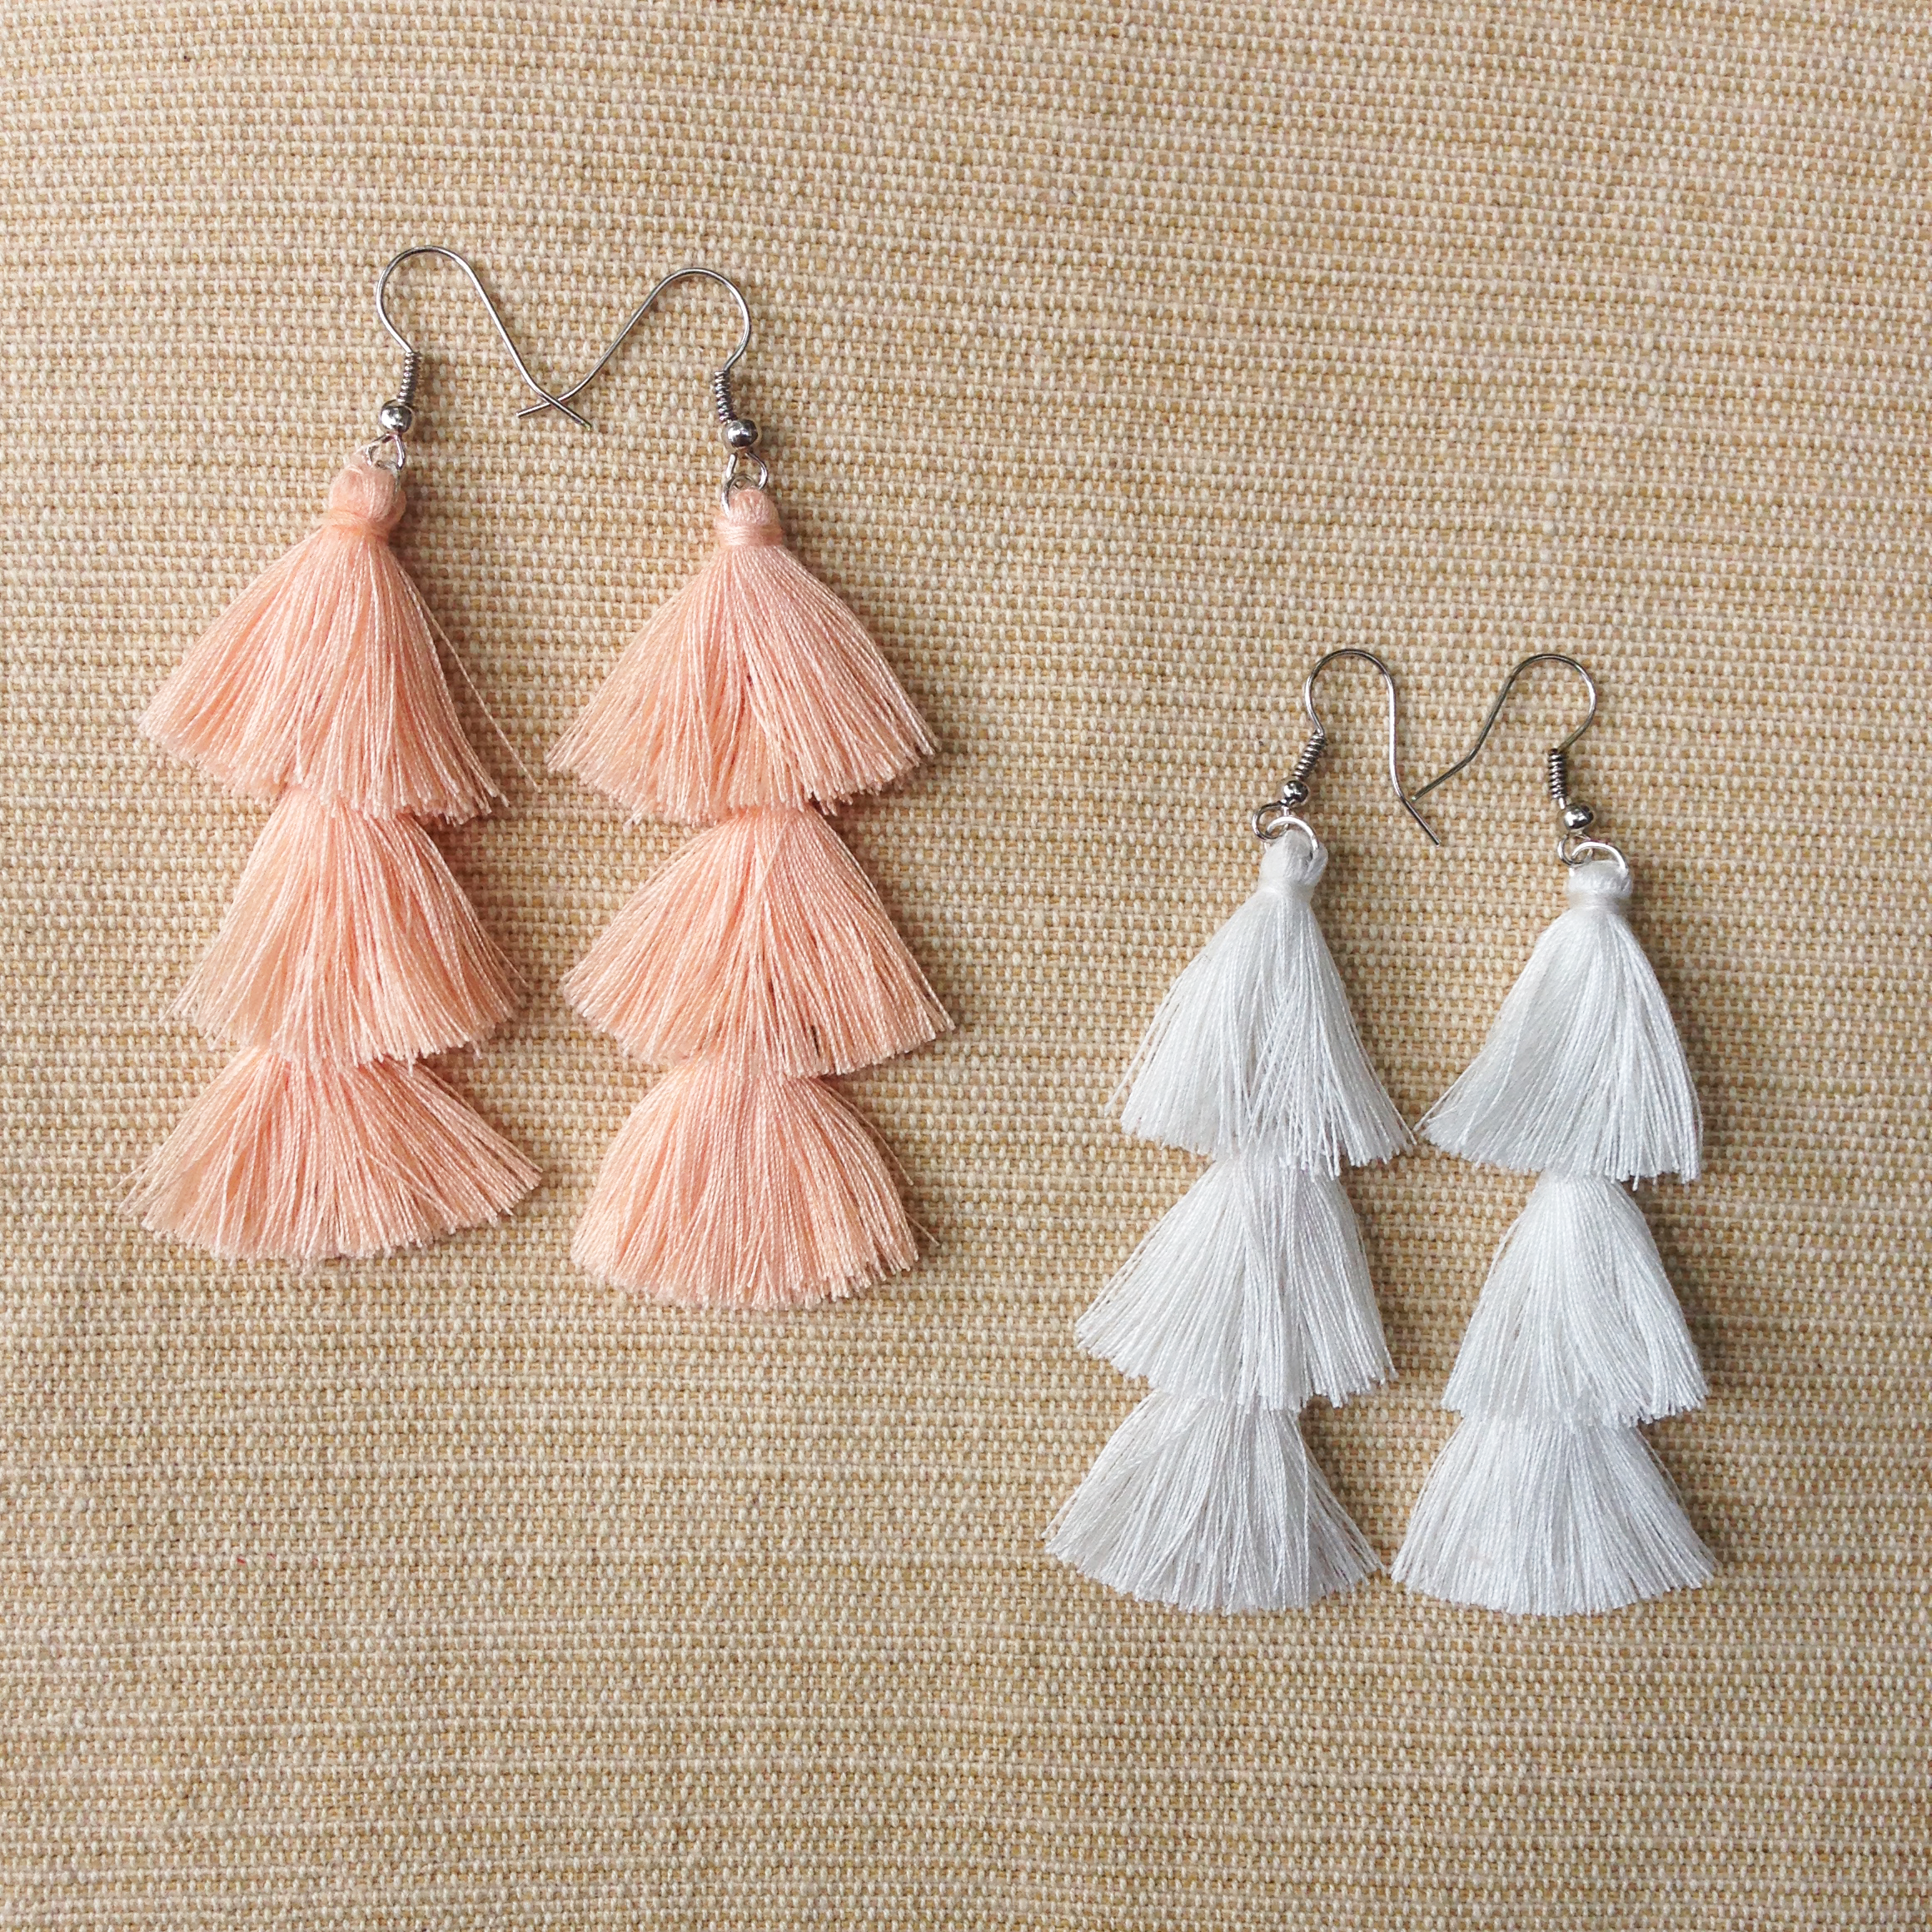 Zero Waste Tassel Earrings